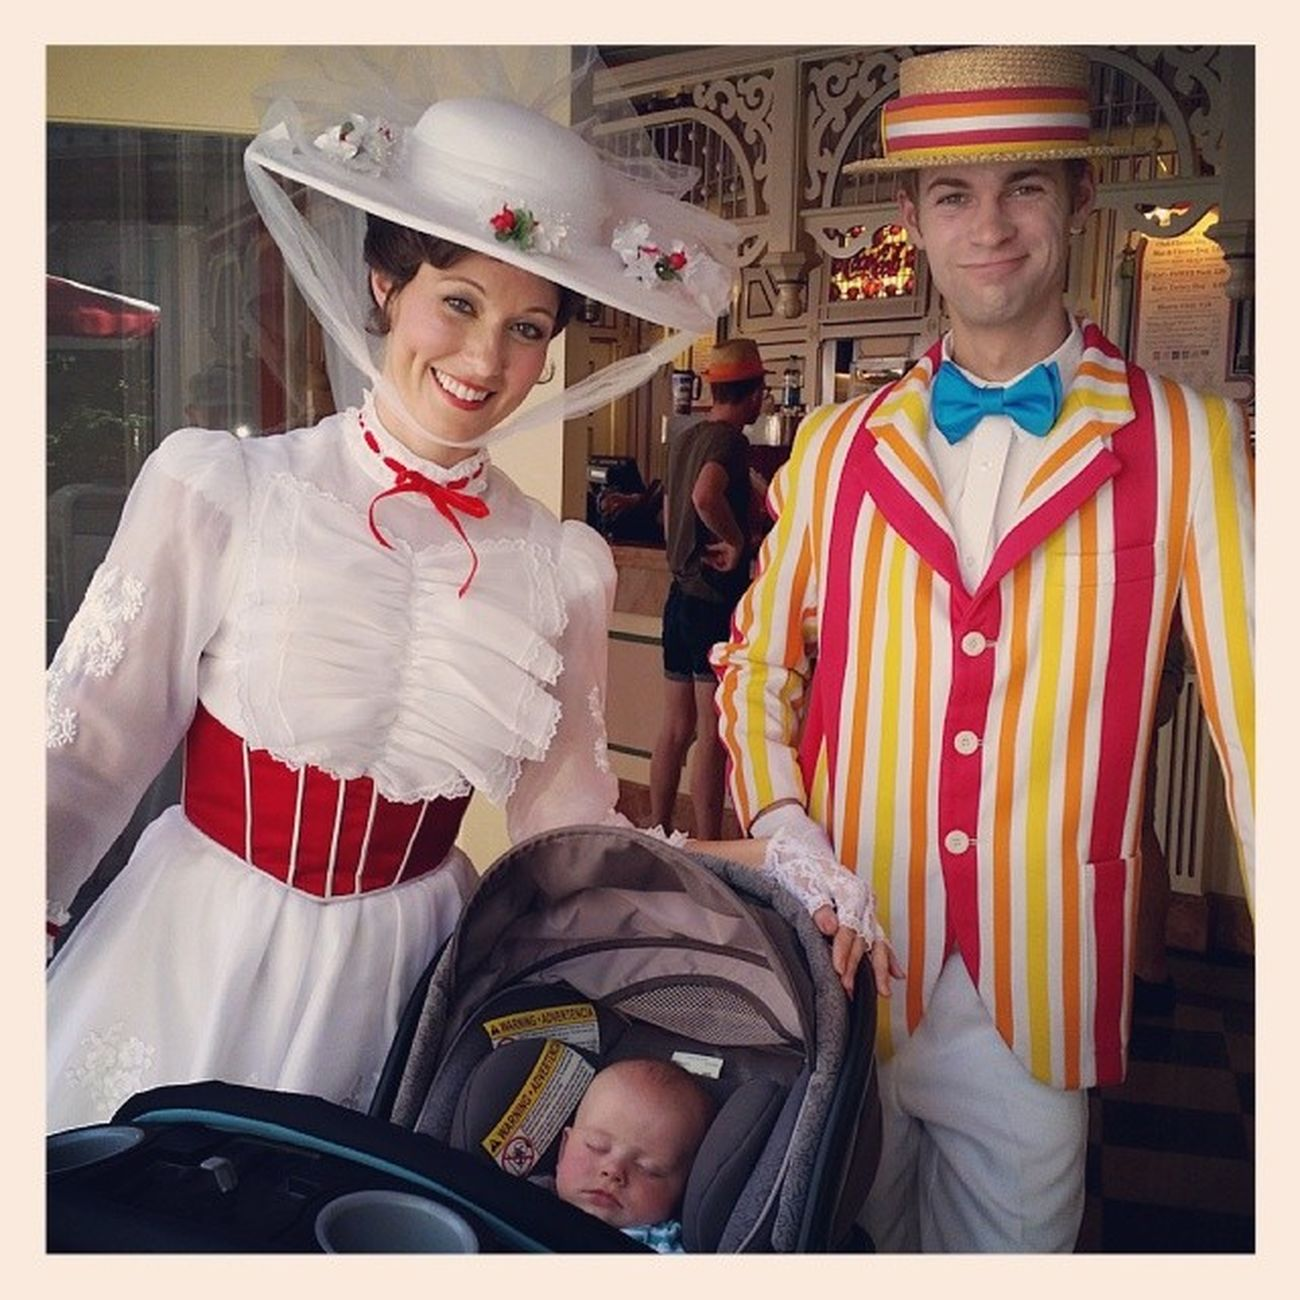 What wonderful memories we make while the other is asleep, he loves this movie in his waking hours though! Marypoppins Bert Disneyland Disneyside